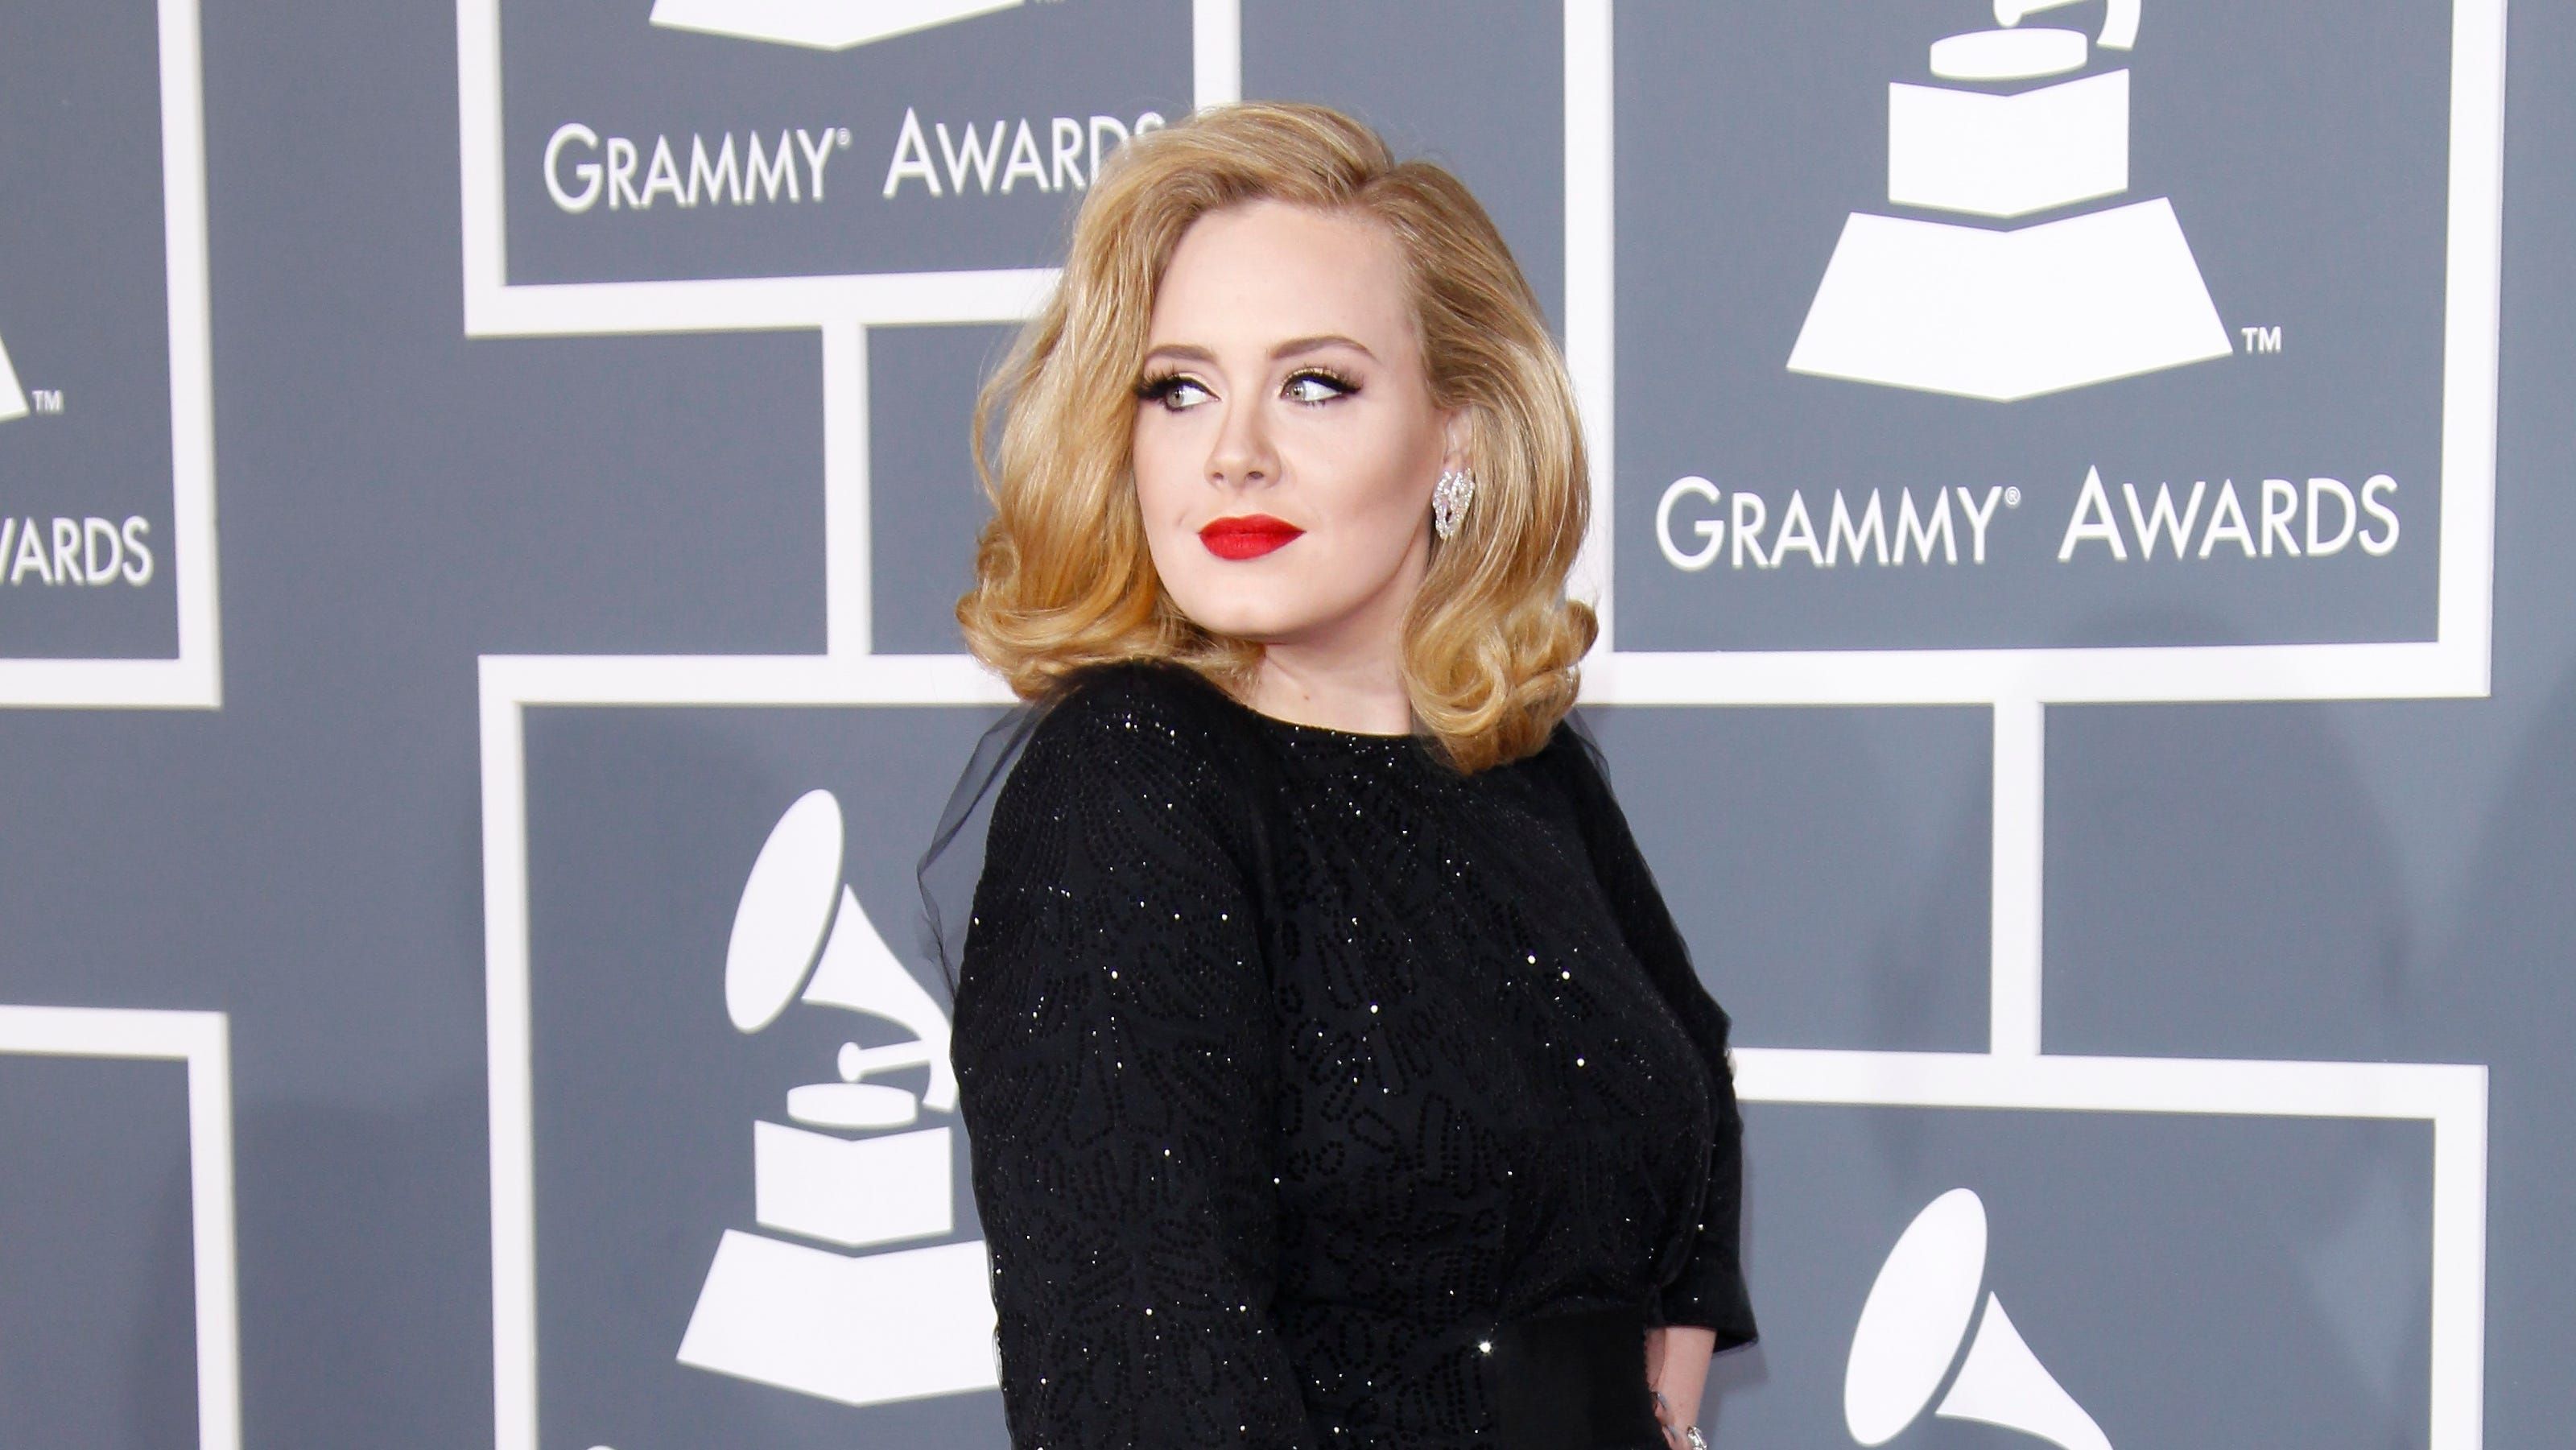 Adele stirs cultural appropriation controversy wearing Bantu knots in latest photo